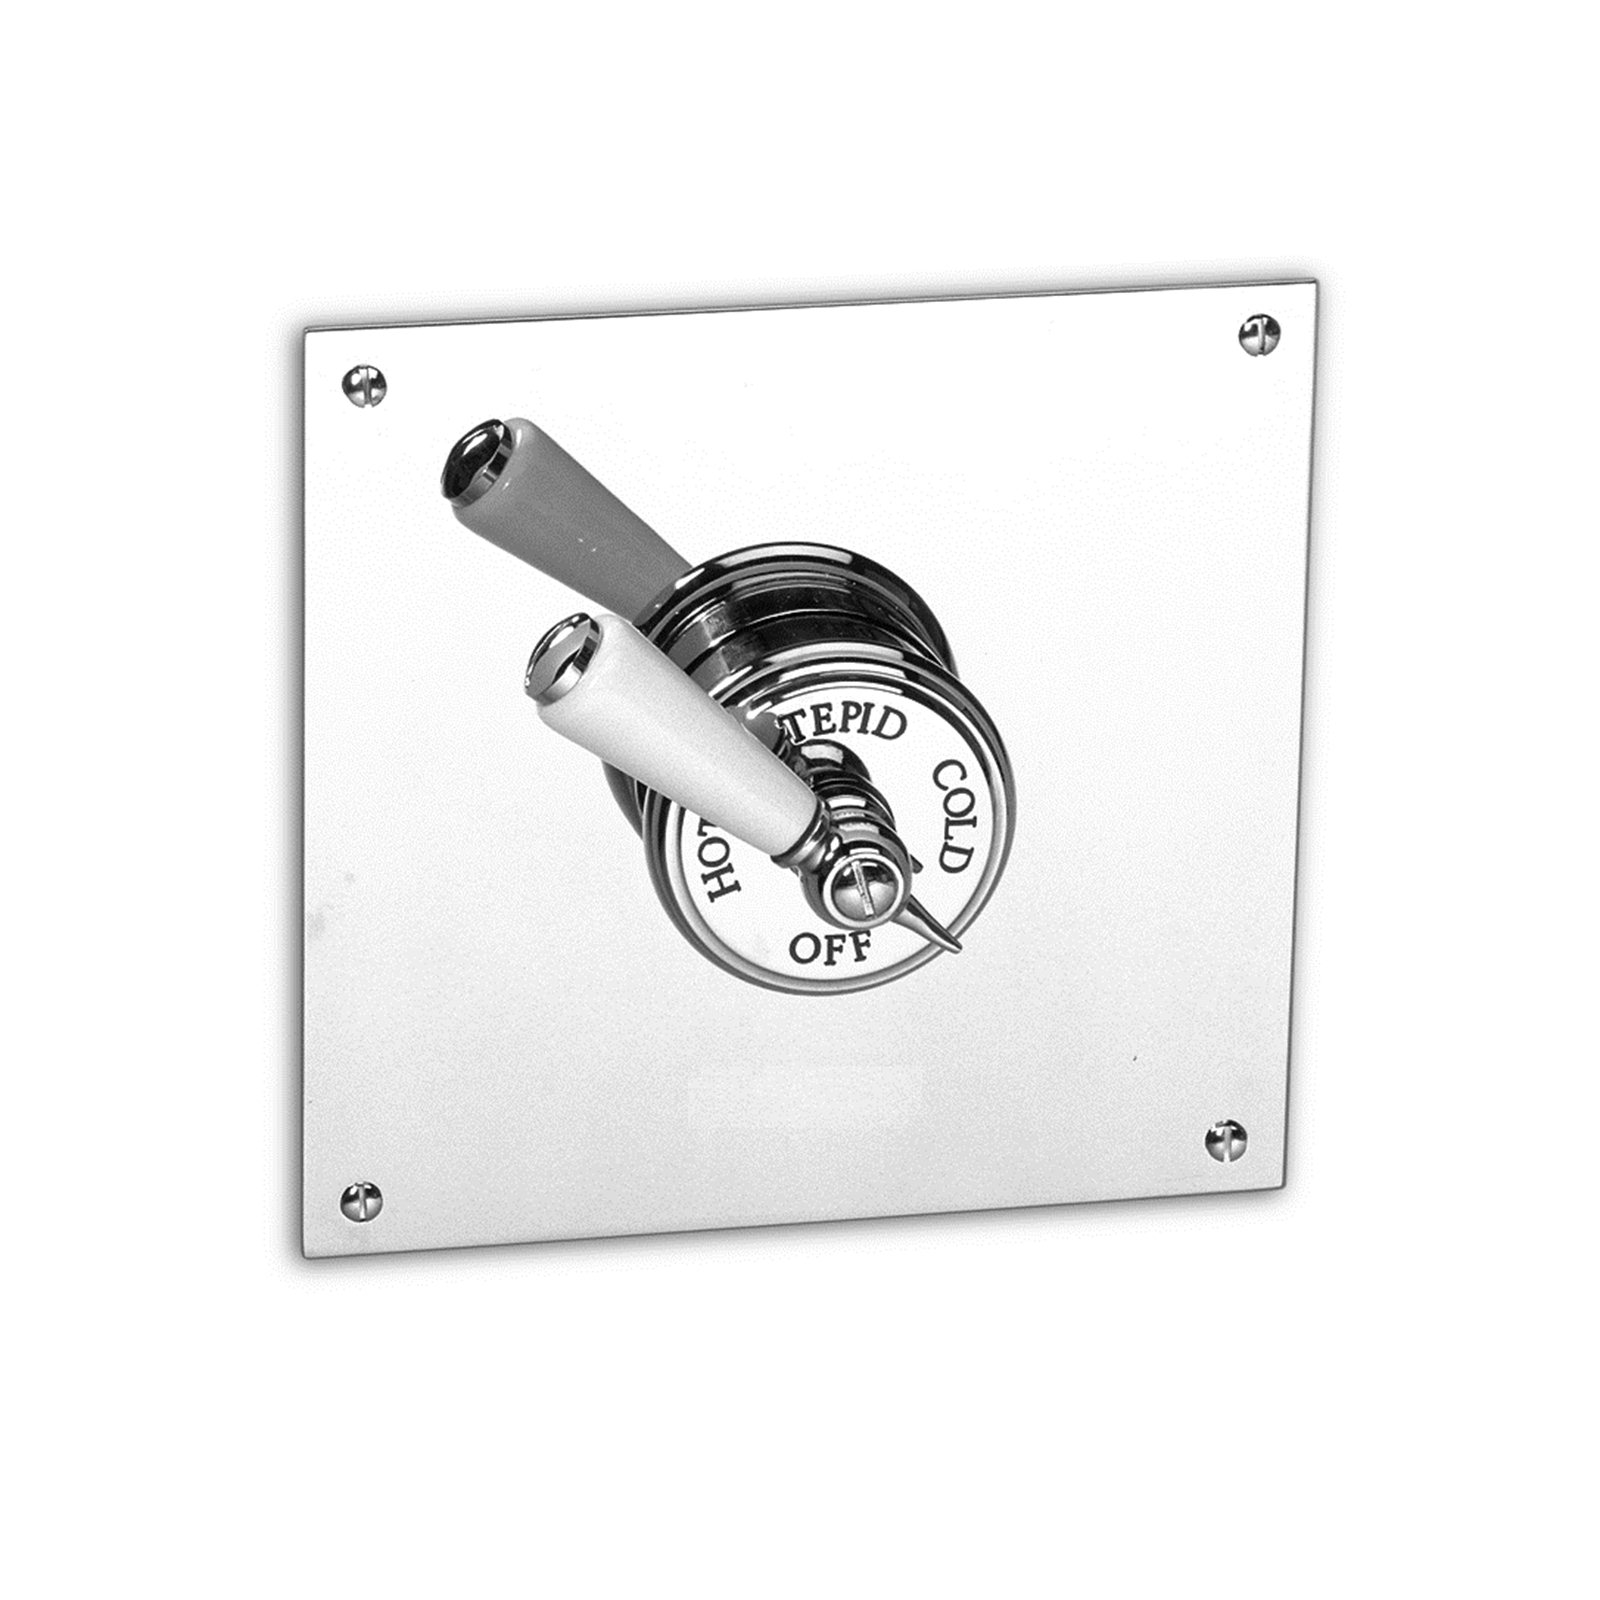 Recessed Thermostatic mixer with square backplate Image